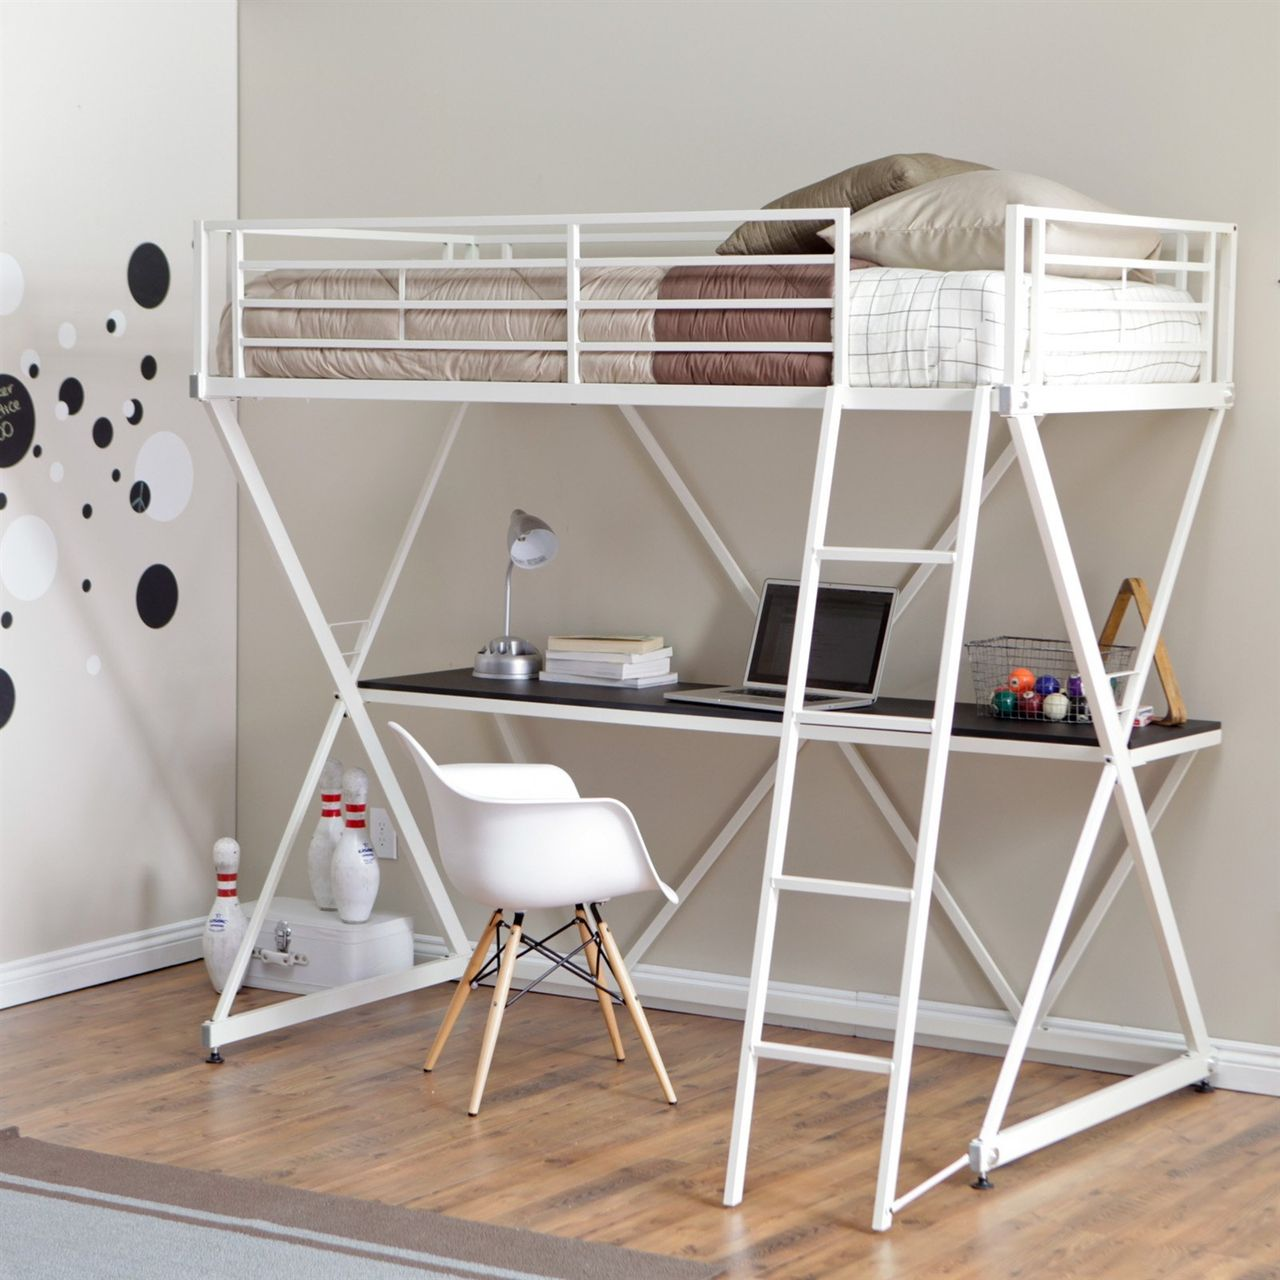 Best Modern Twin Bunk Bed Loft With Desk In White Metal Finish 400 x 300